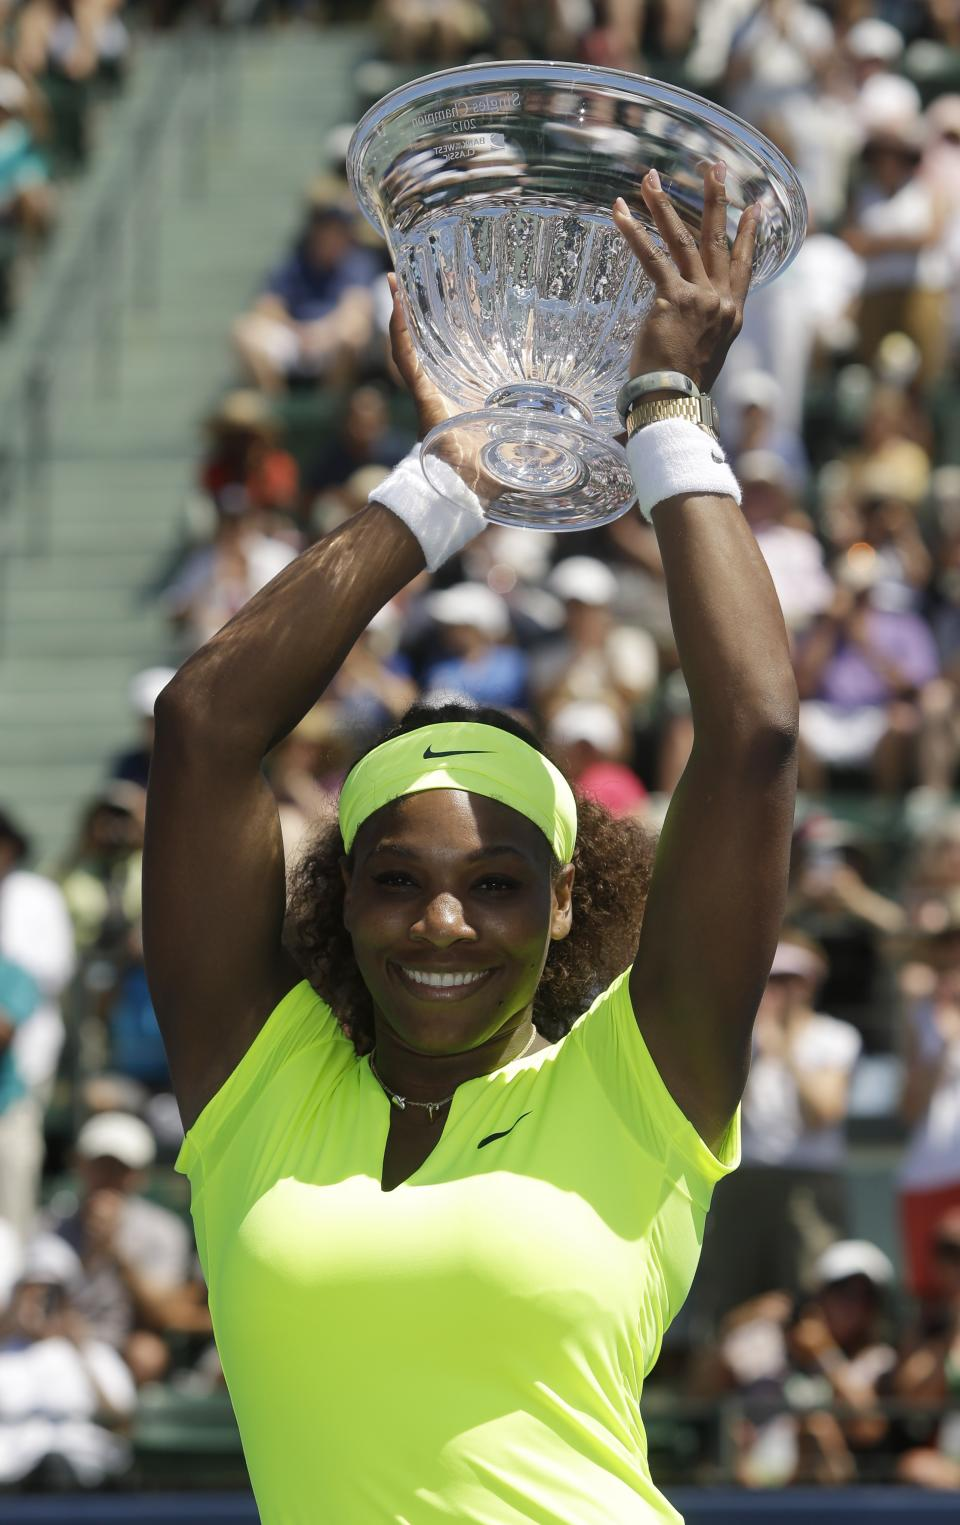 Serena Williams, of the United States, holds the winner's trophy after defeating Coco Vandeweghe, of the United States, during the final of the Bank of the West tennis tournament on Sunday, July 15, 2012, in Stanford, Calif.  Williams won 7-5, 6-3. (AP Photo/Marcio Jose Sanchez)